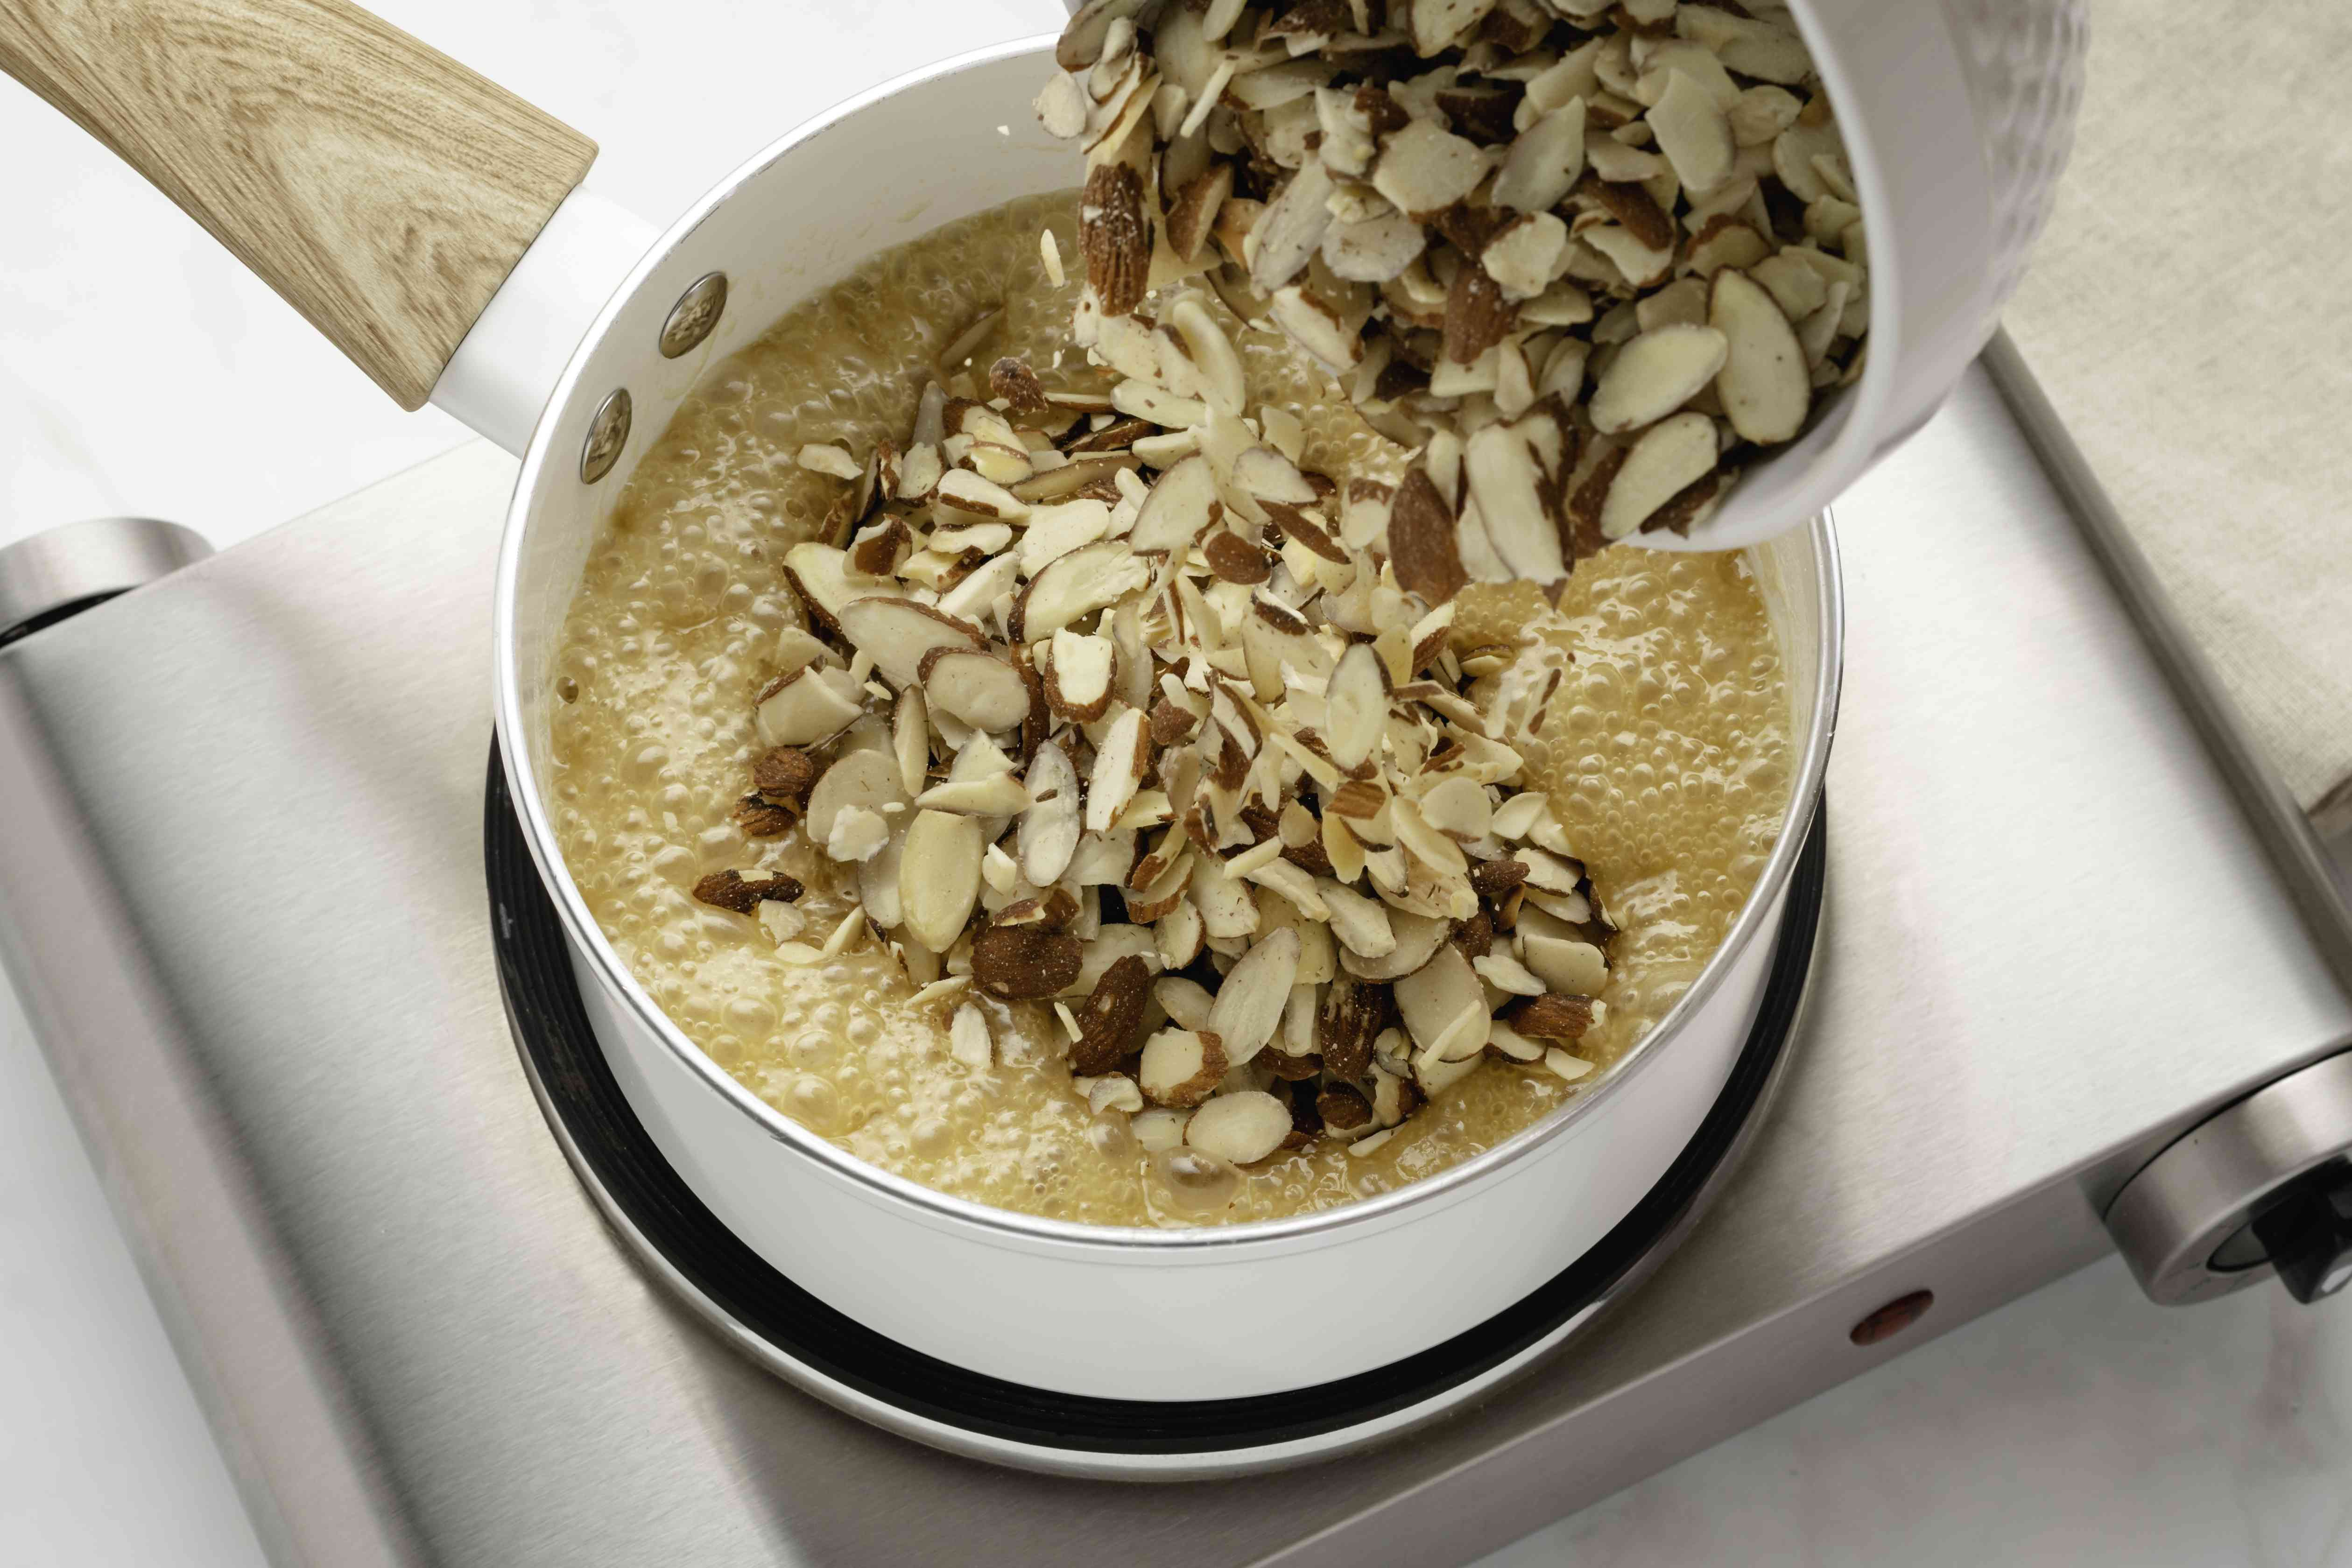 Almonds added to the butter and honey mixture